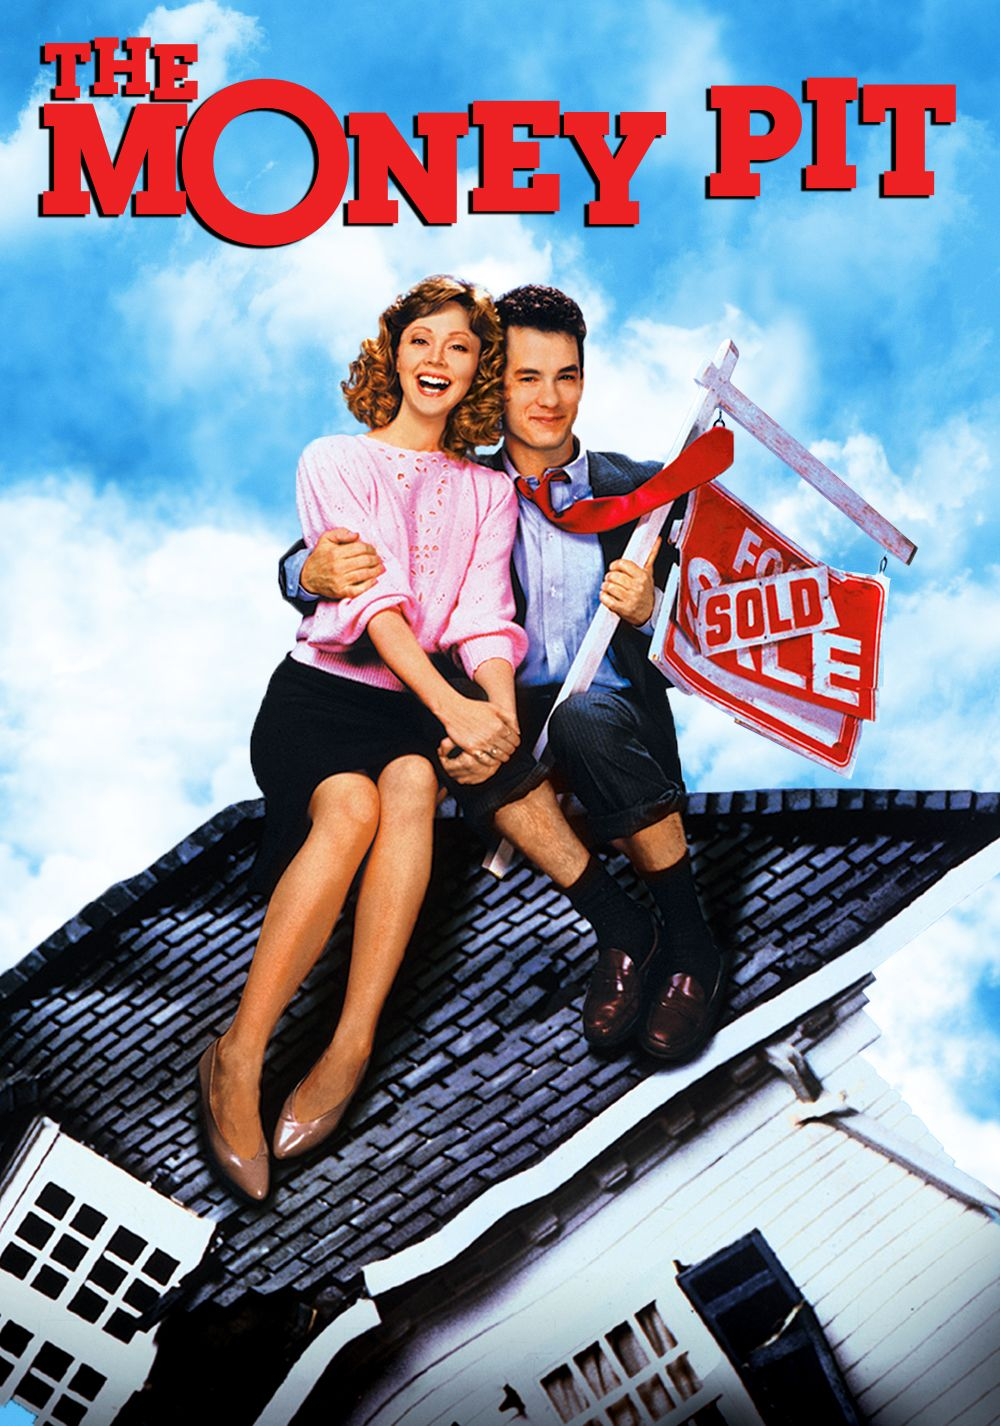 THE MONEY PIT comedy movie review, starring Tom Hanks and Shelley Long!